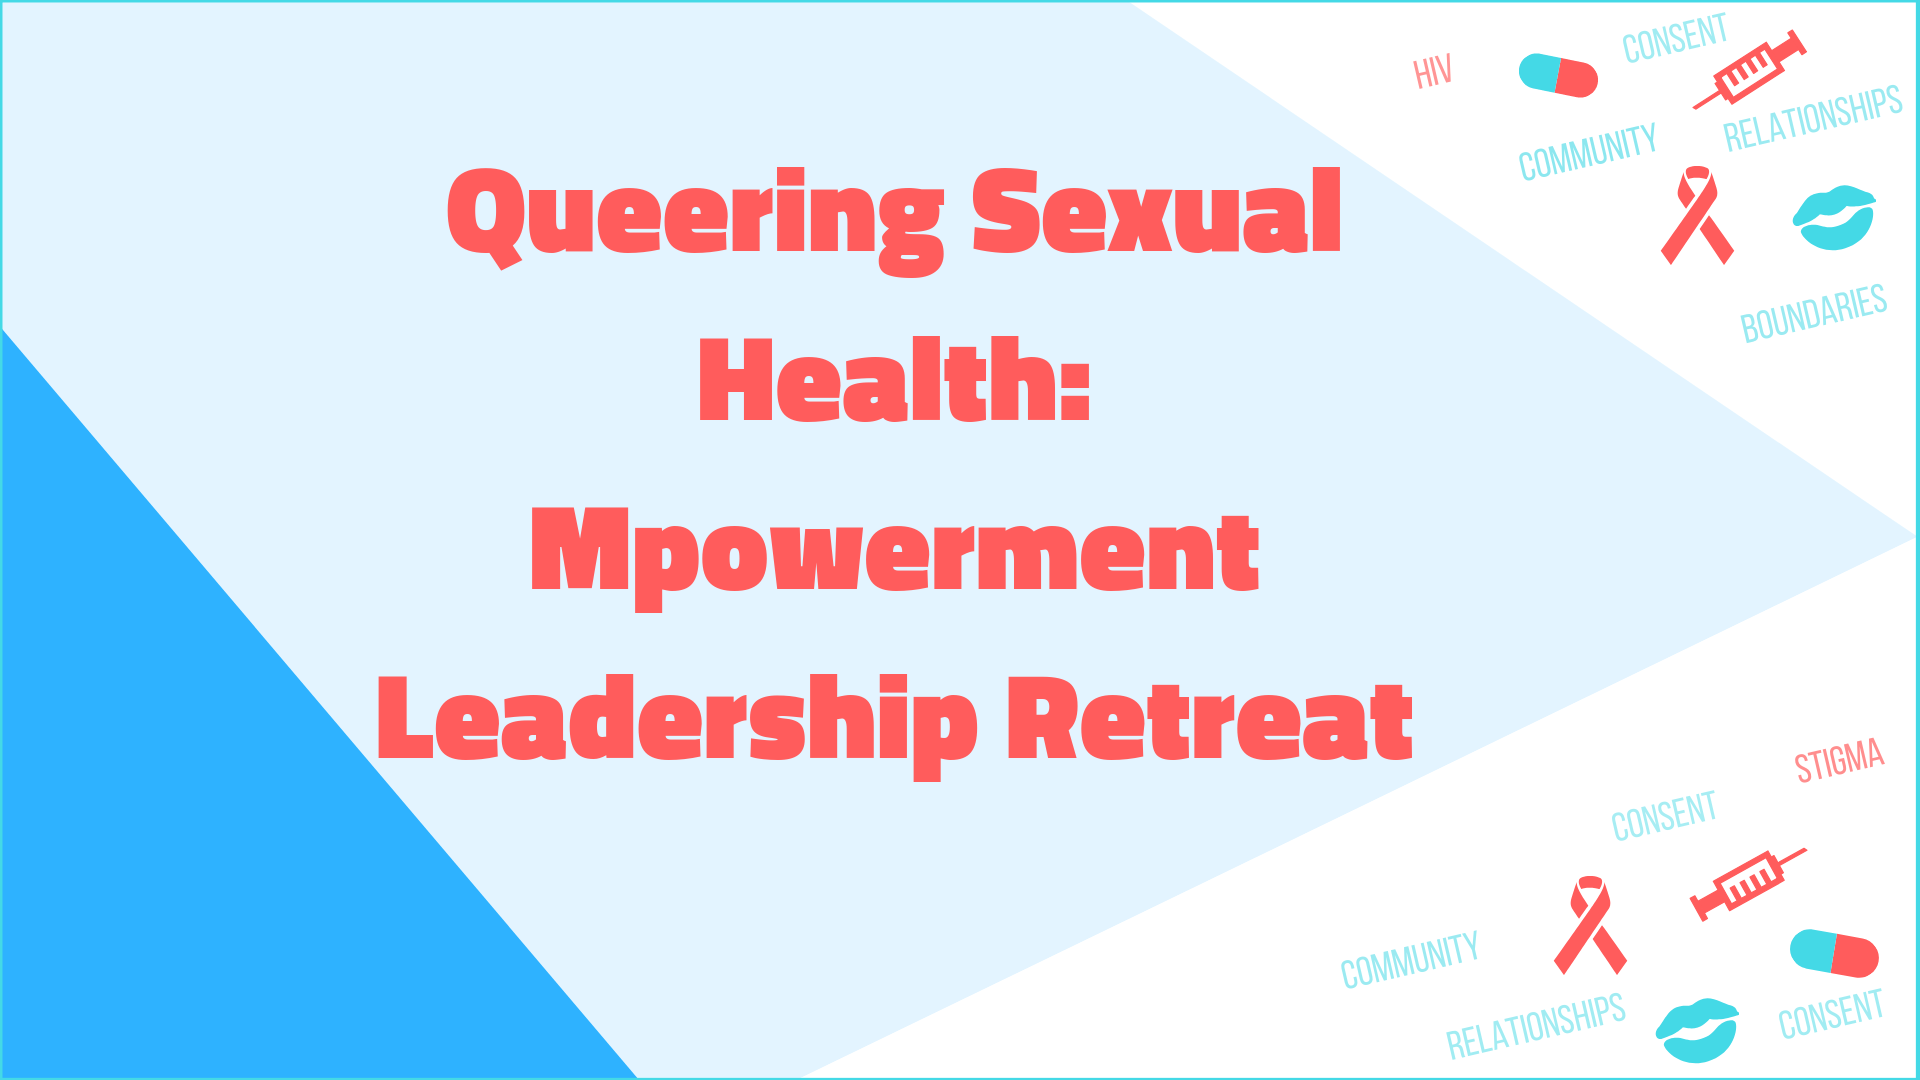 Queering_Sex_Ed_Mpowerment_Leadership_Retreat_(4).png